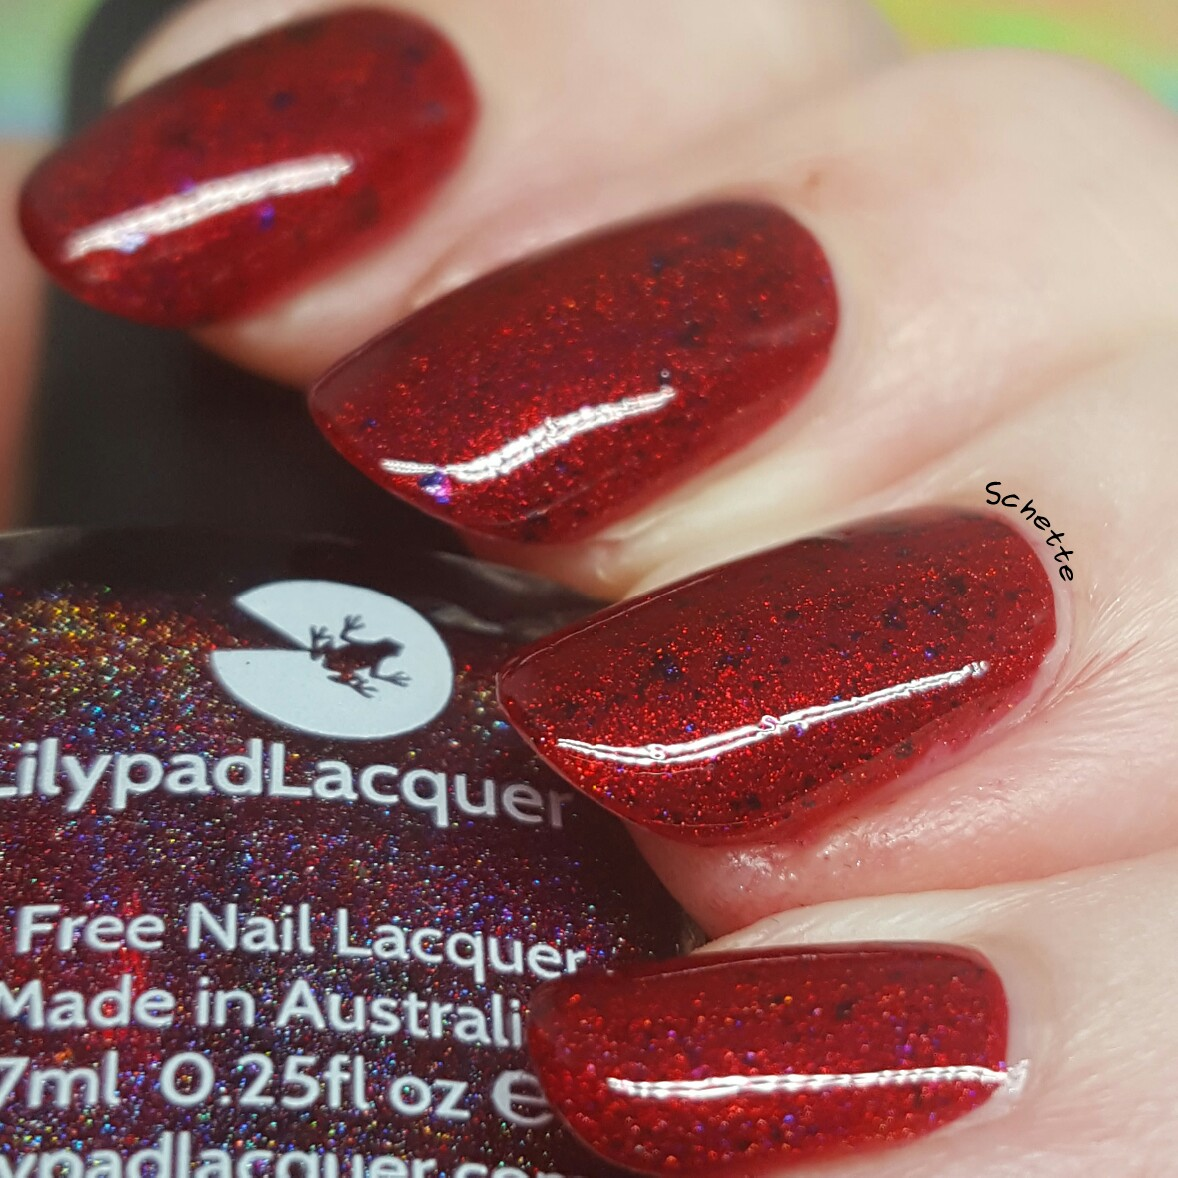 Lilypad Lacquer - Protoype 2016 1